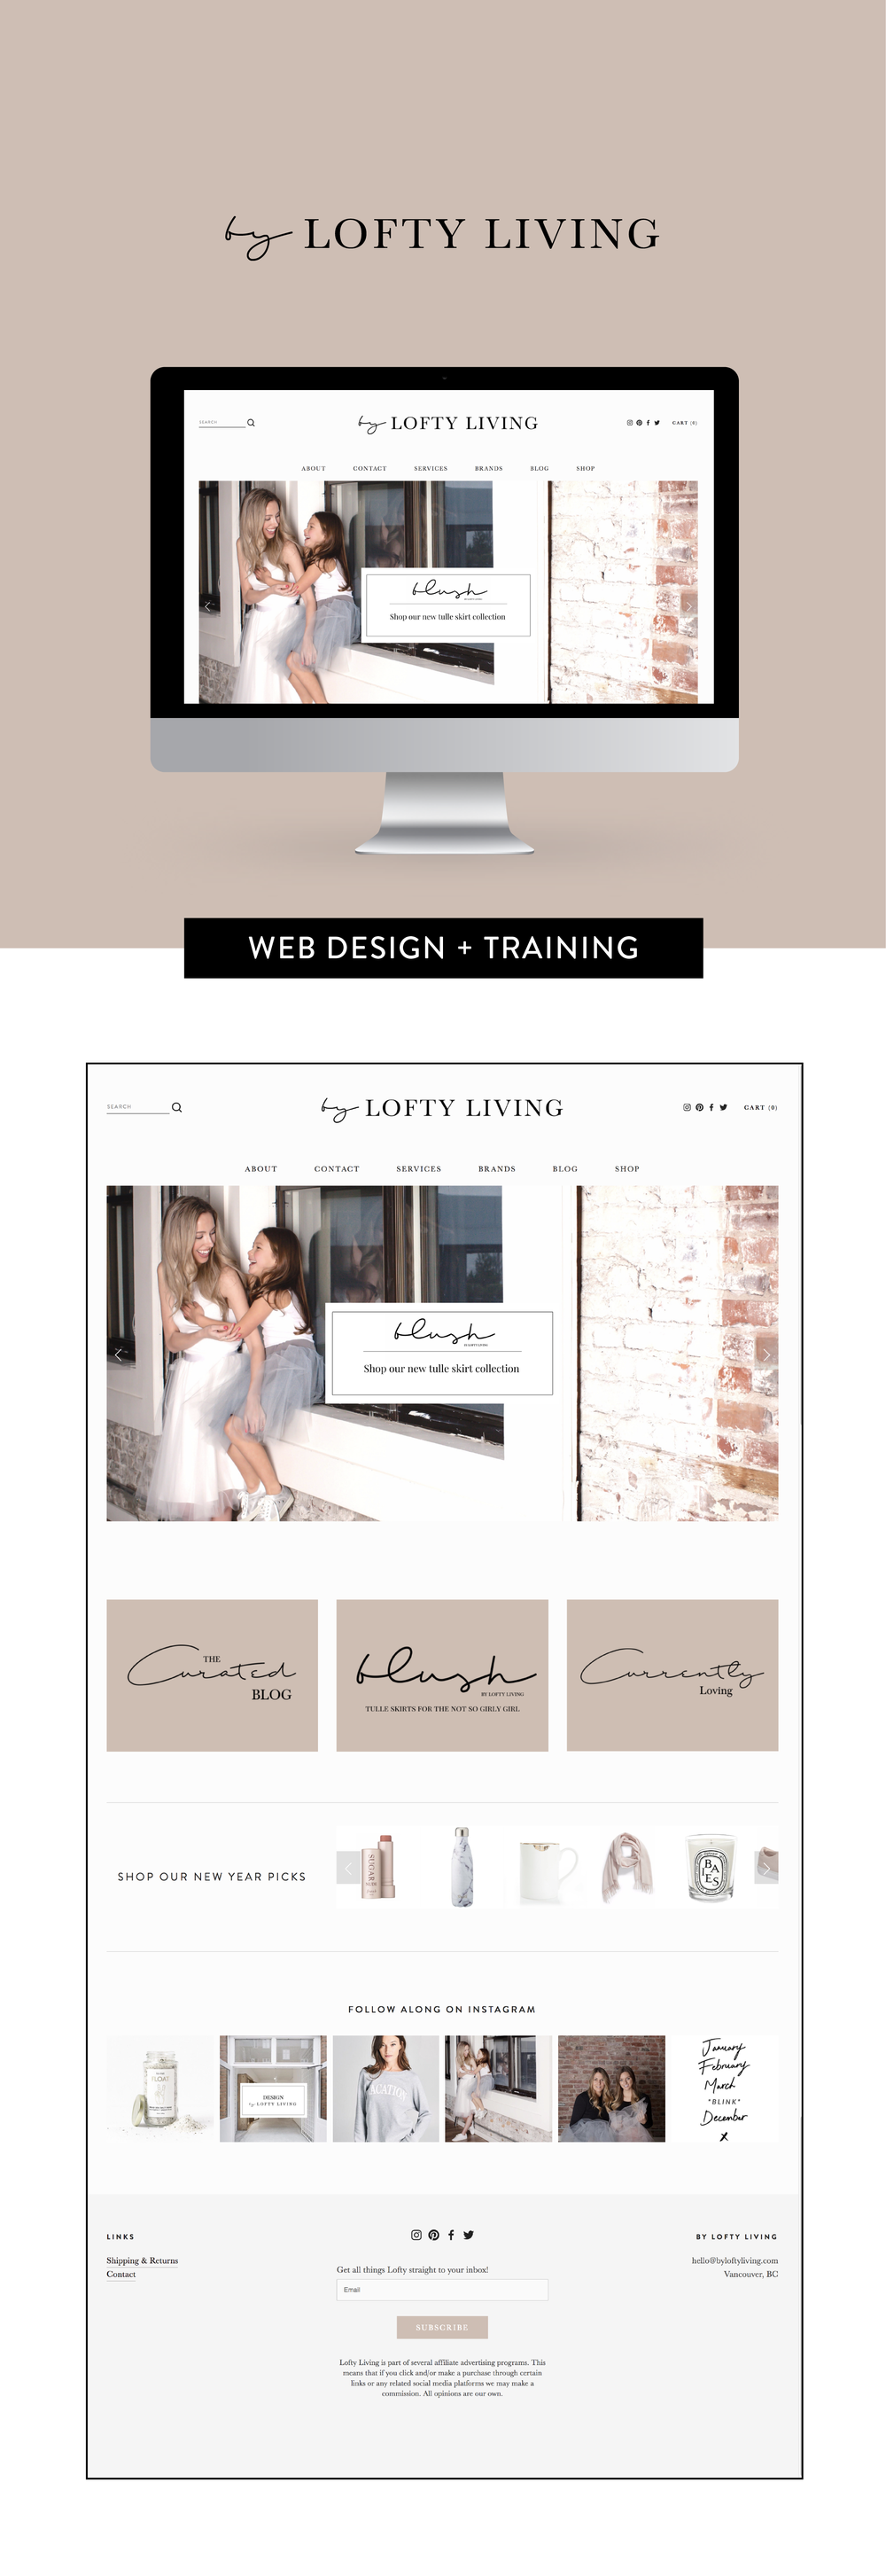 Web design and set up for By Lofty Living by Salt Design Co. in Vancouver BC